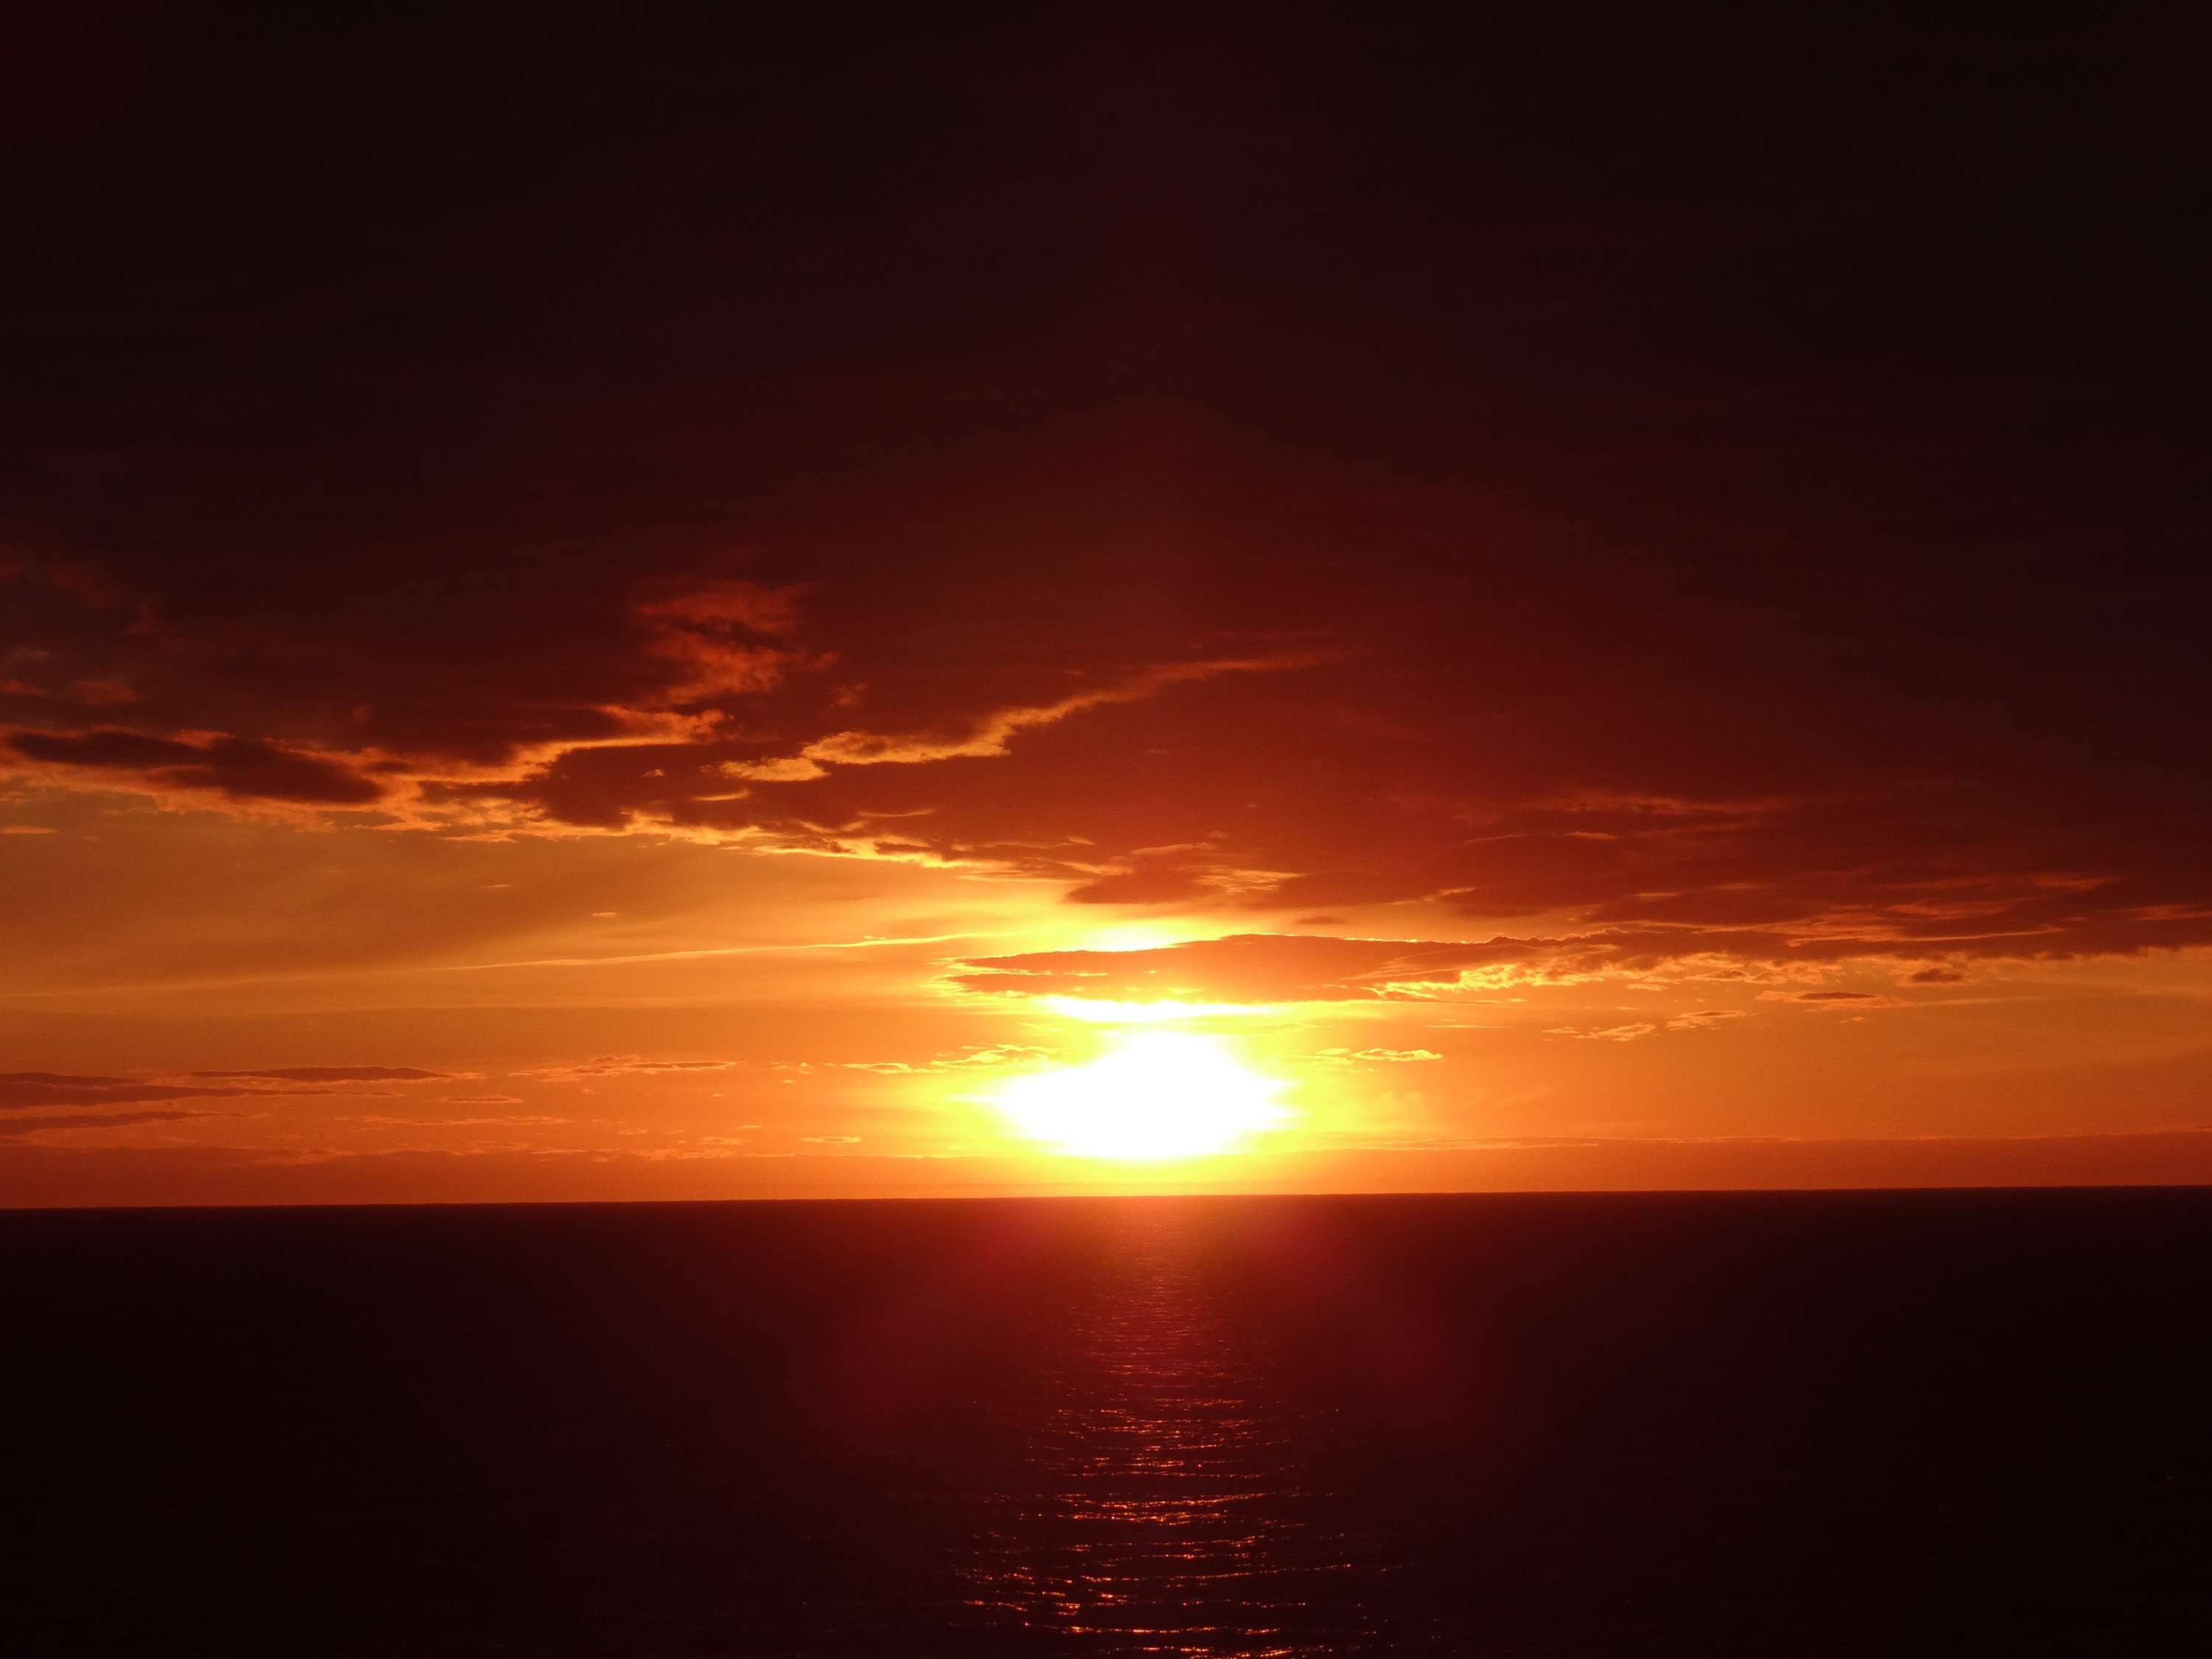 Sunset over the ocean as seen from a Princess Cruises Ship